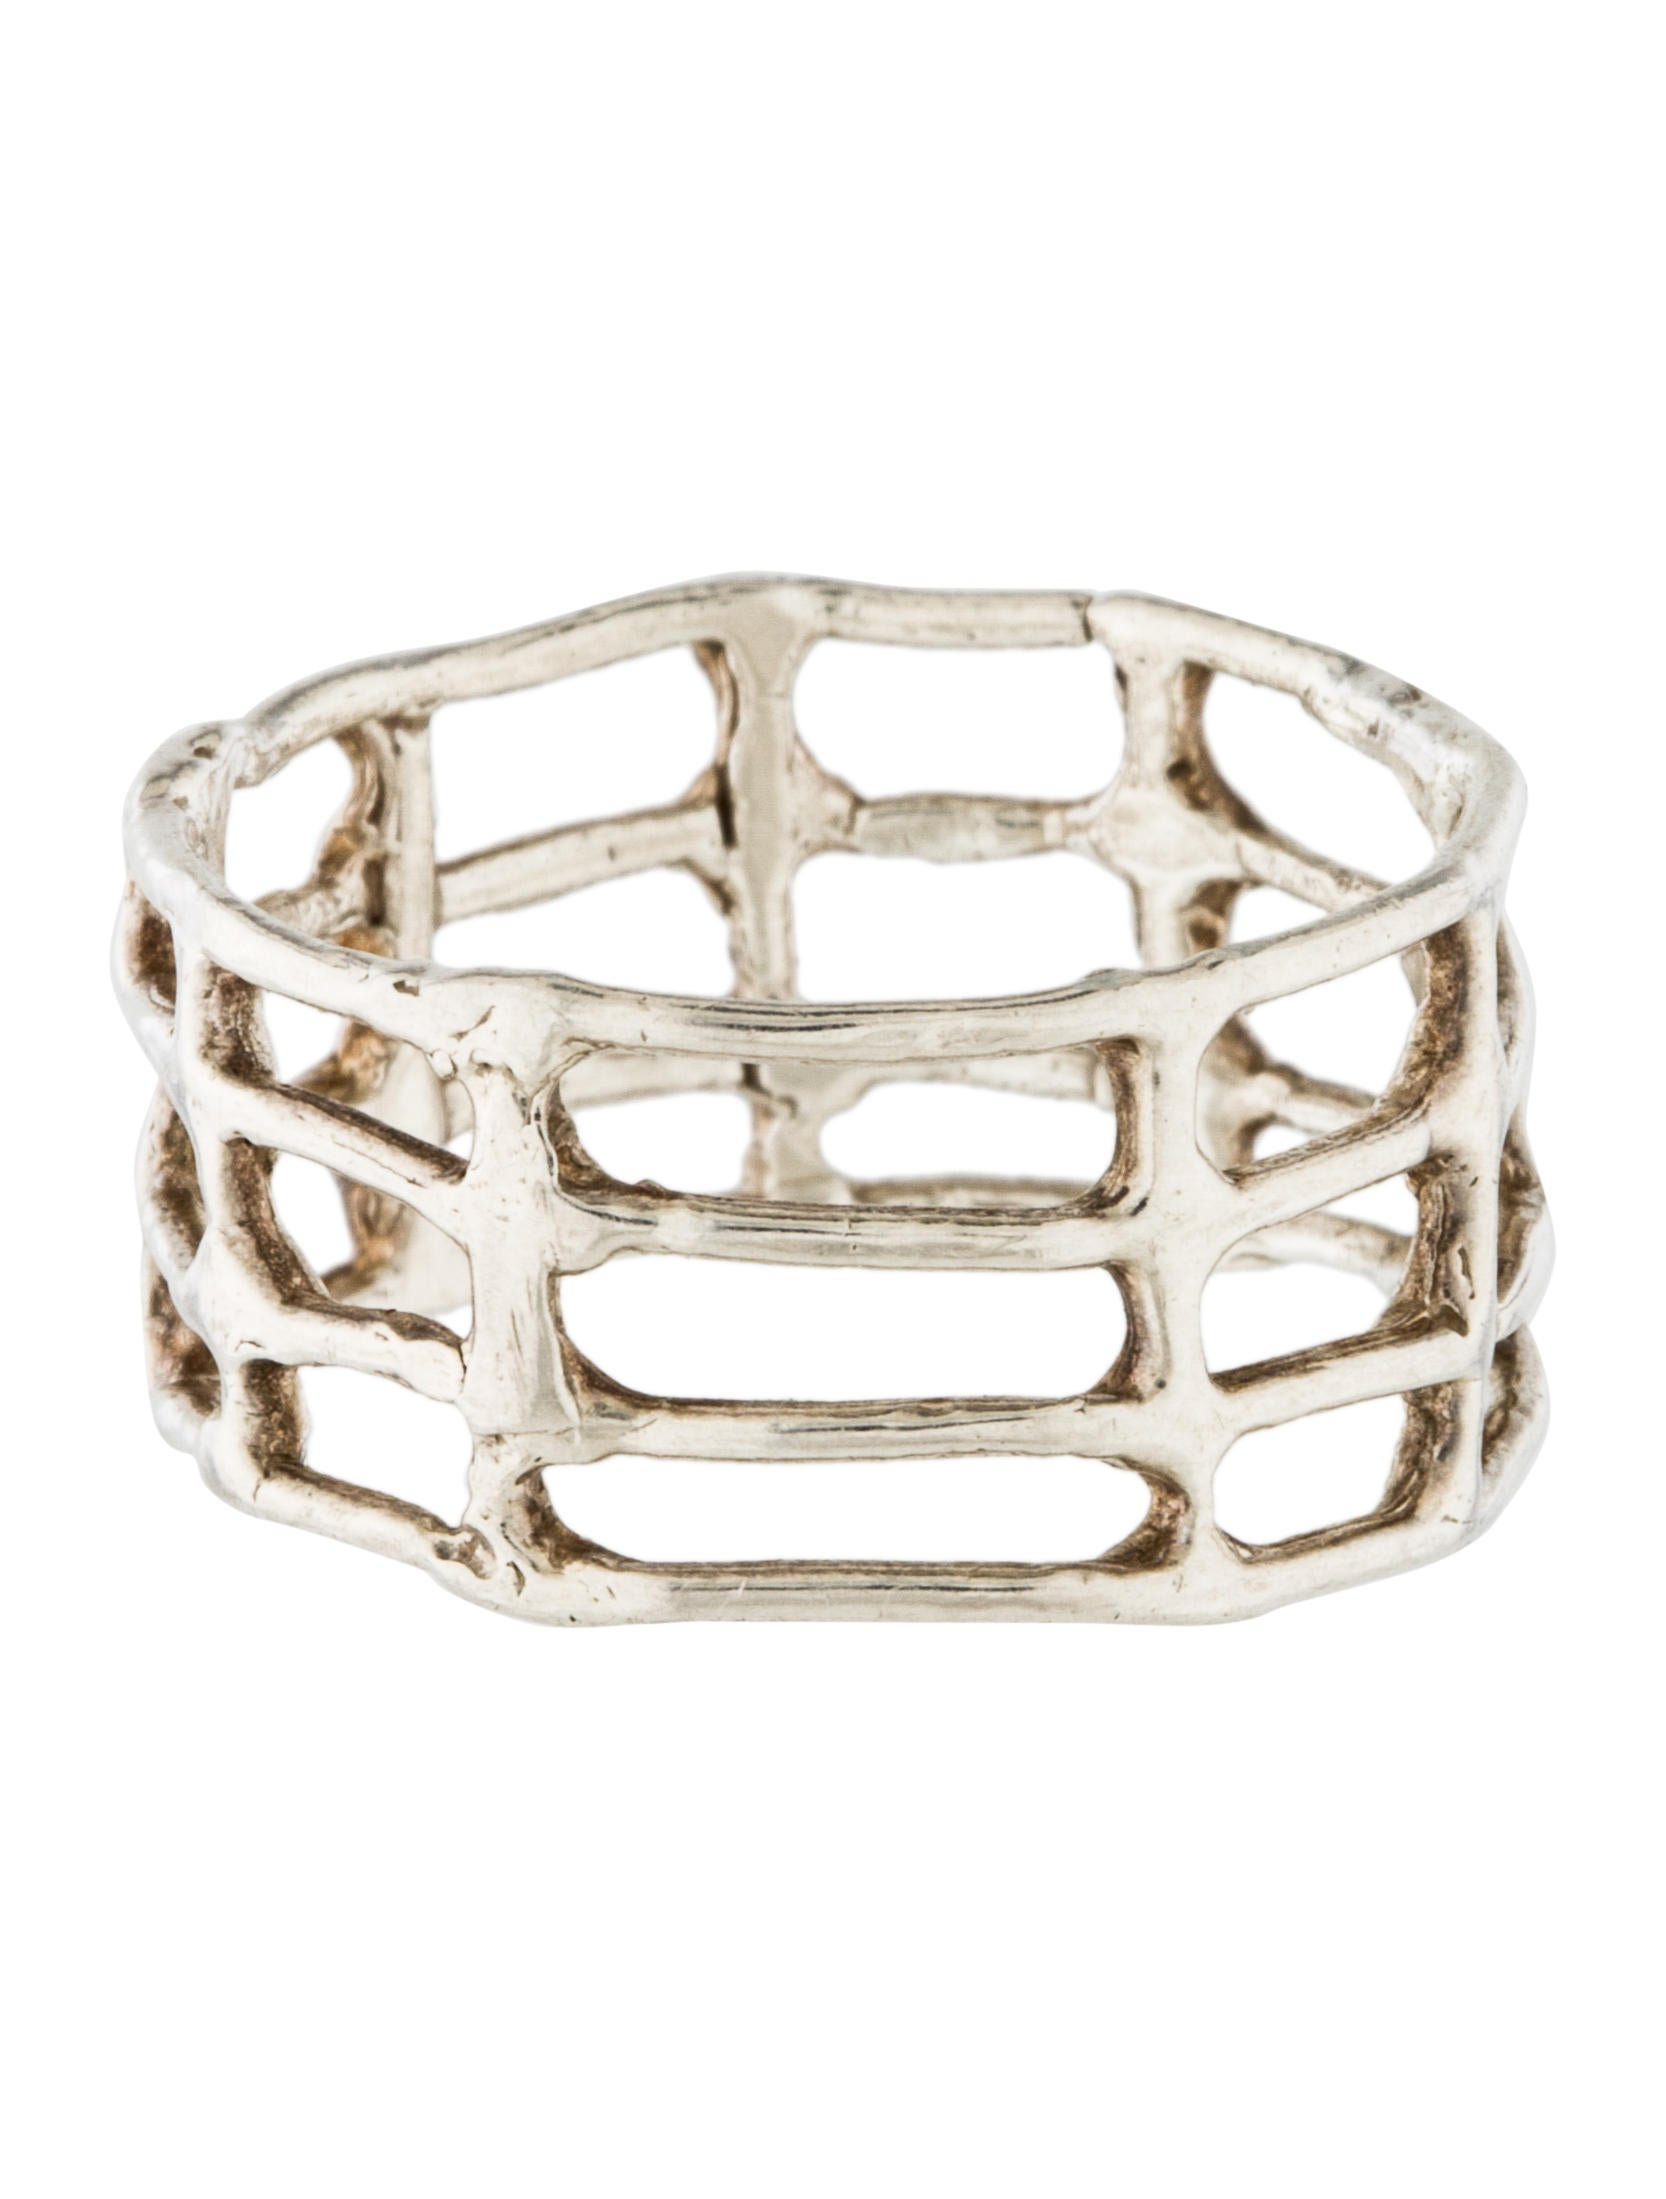 Wwake Cage Ring  Rings  Eakww20004  The Realreal. Leather Pendant. Line Bracelet. Catalogue Gold Jewellery. Rose Gold And White Gold Wedding Band. Rainbow Wedding Rings. Prasiolite Rings. Platinum Wedding Rings. Spinner Pendant